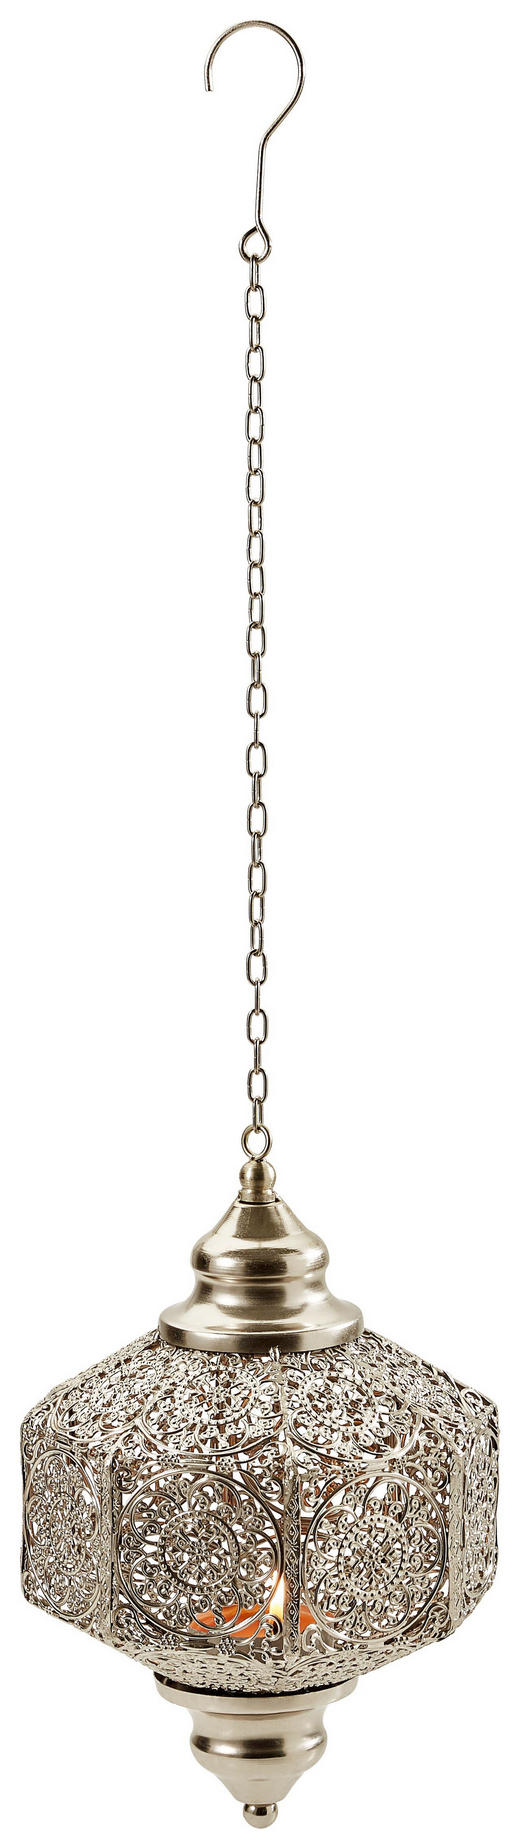 LATERNE - Silberfarben, Metall (20/28/20cm) - Ambia Home